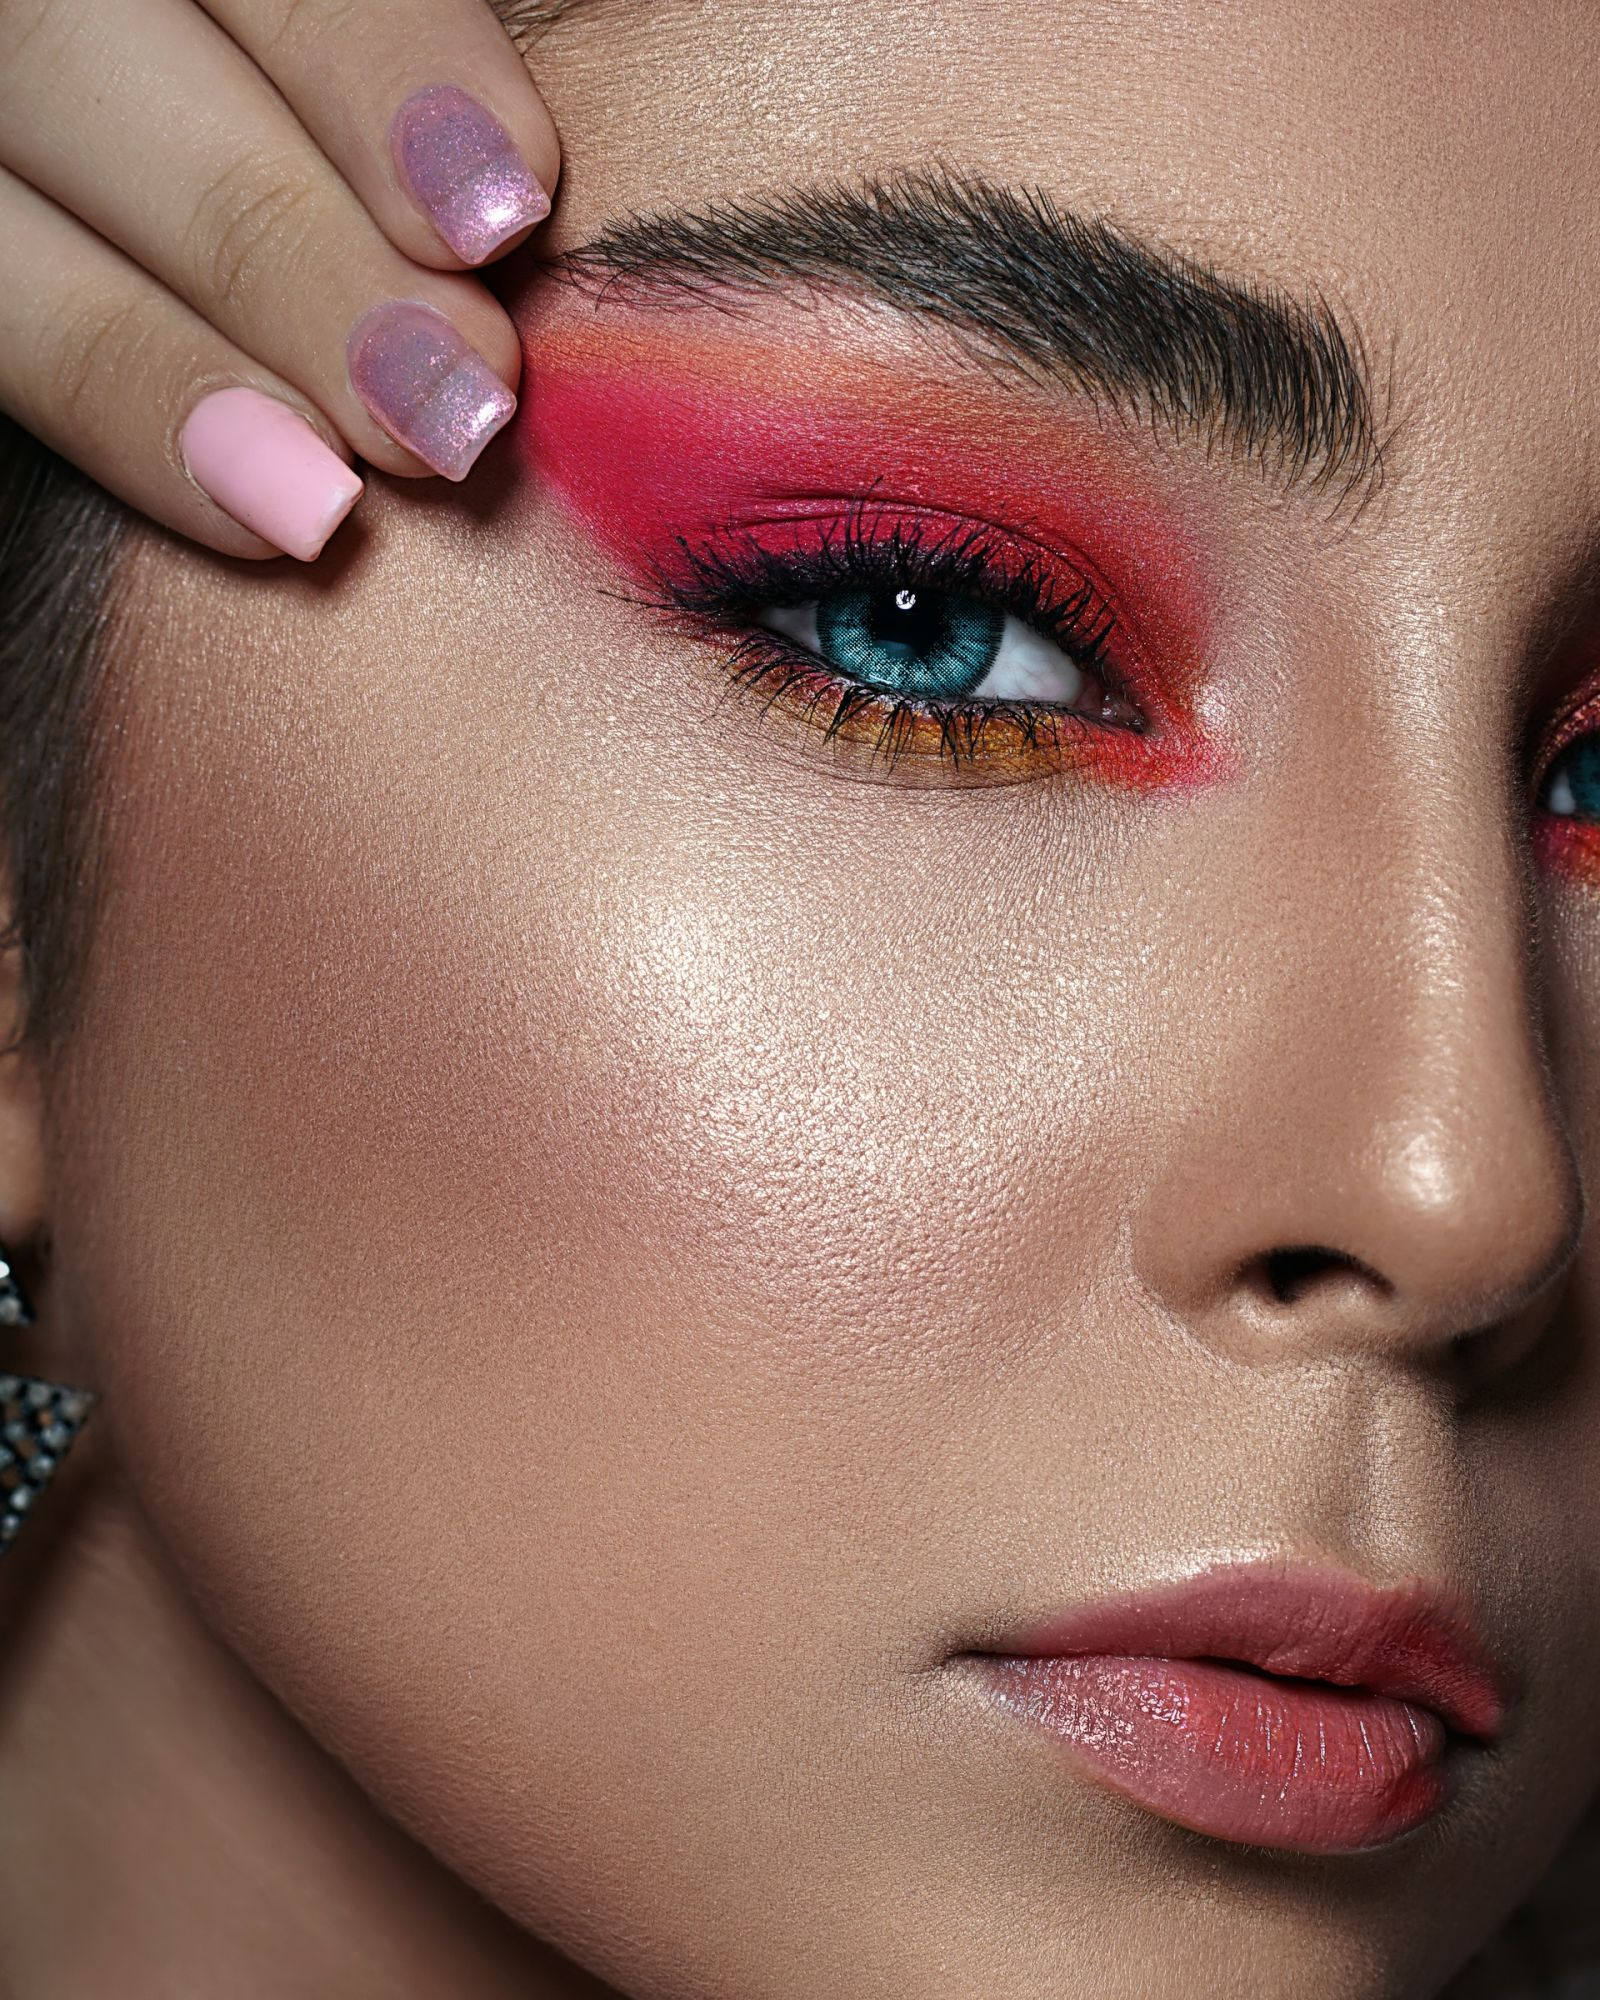 Glam Up Your Eyes With These 5 Christmas Make-Up Ideas